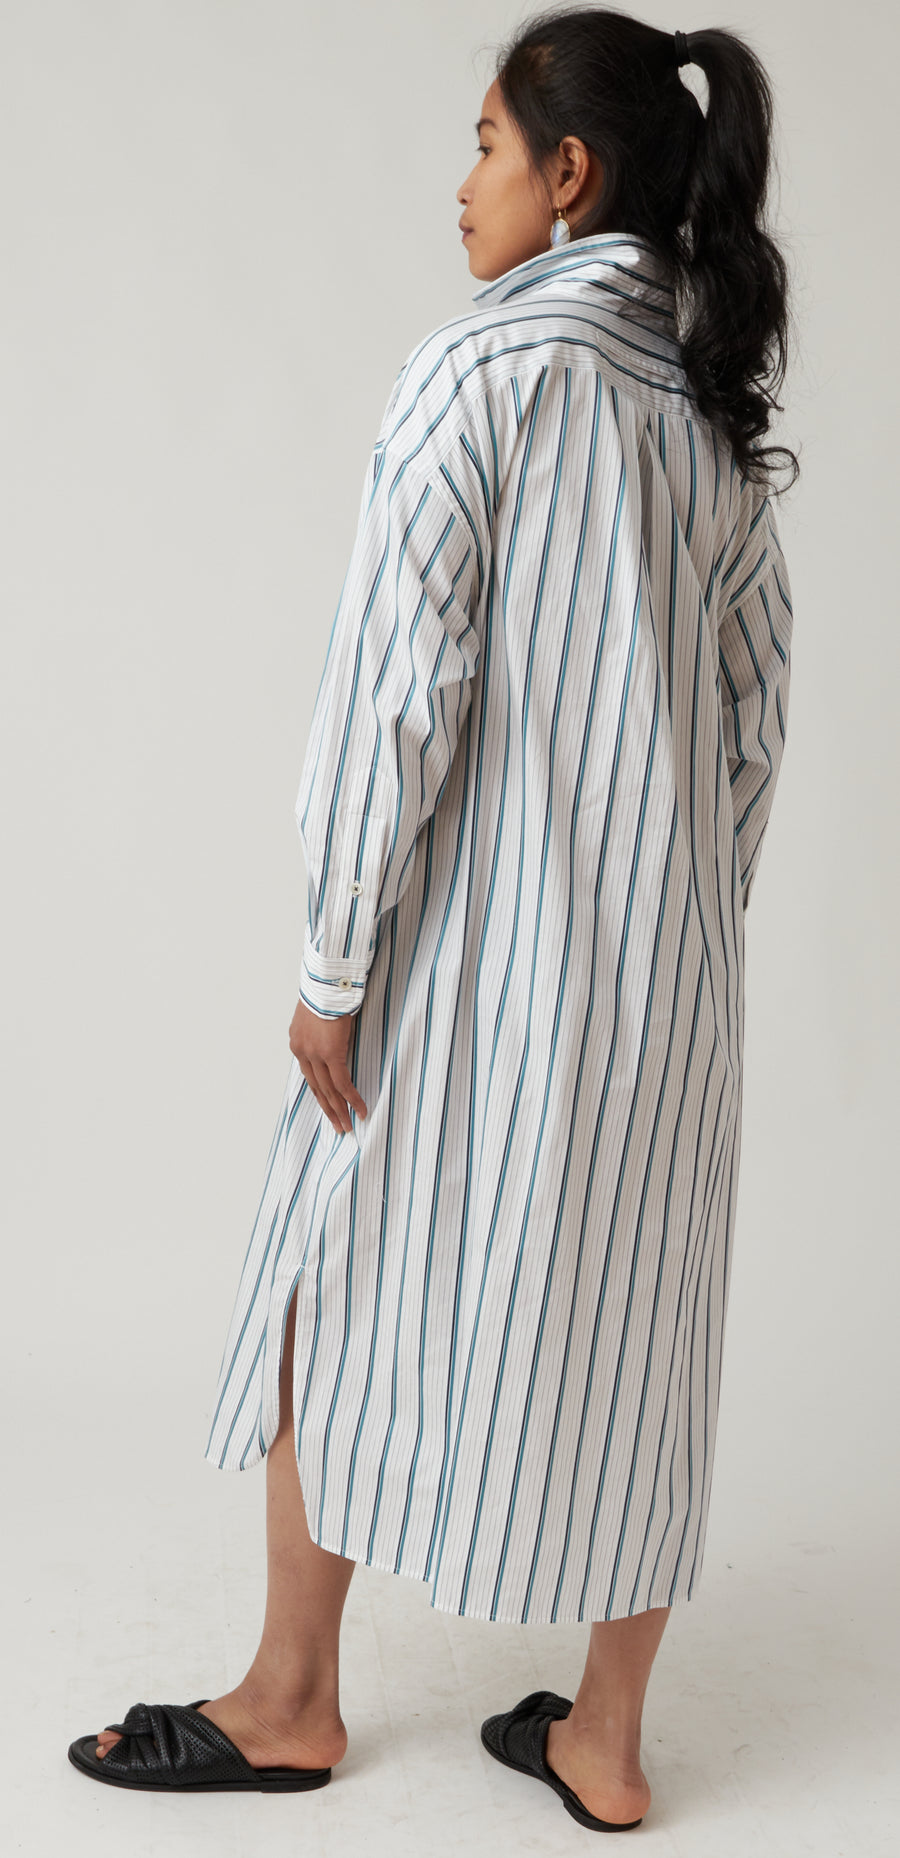 Ticca Button Down Dress